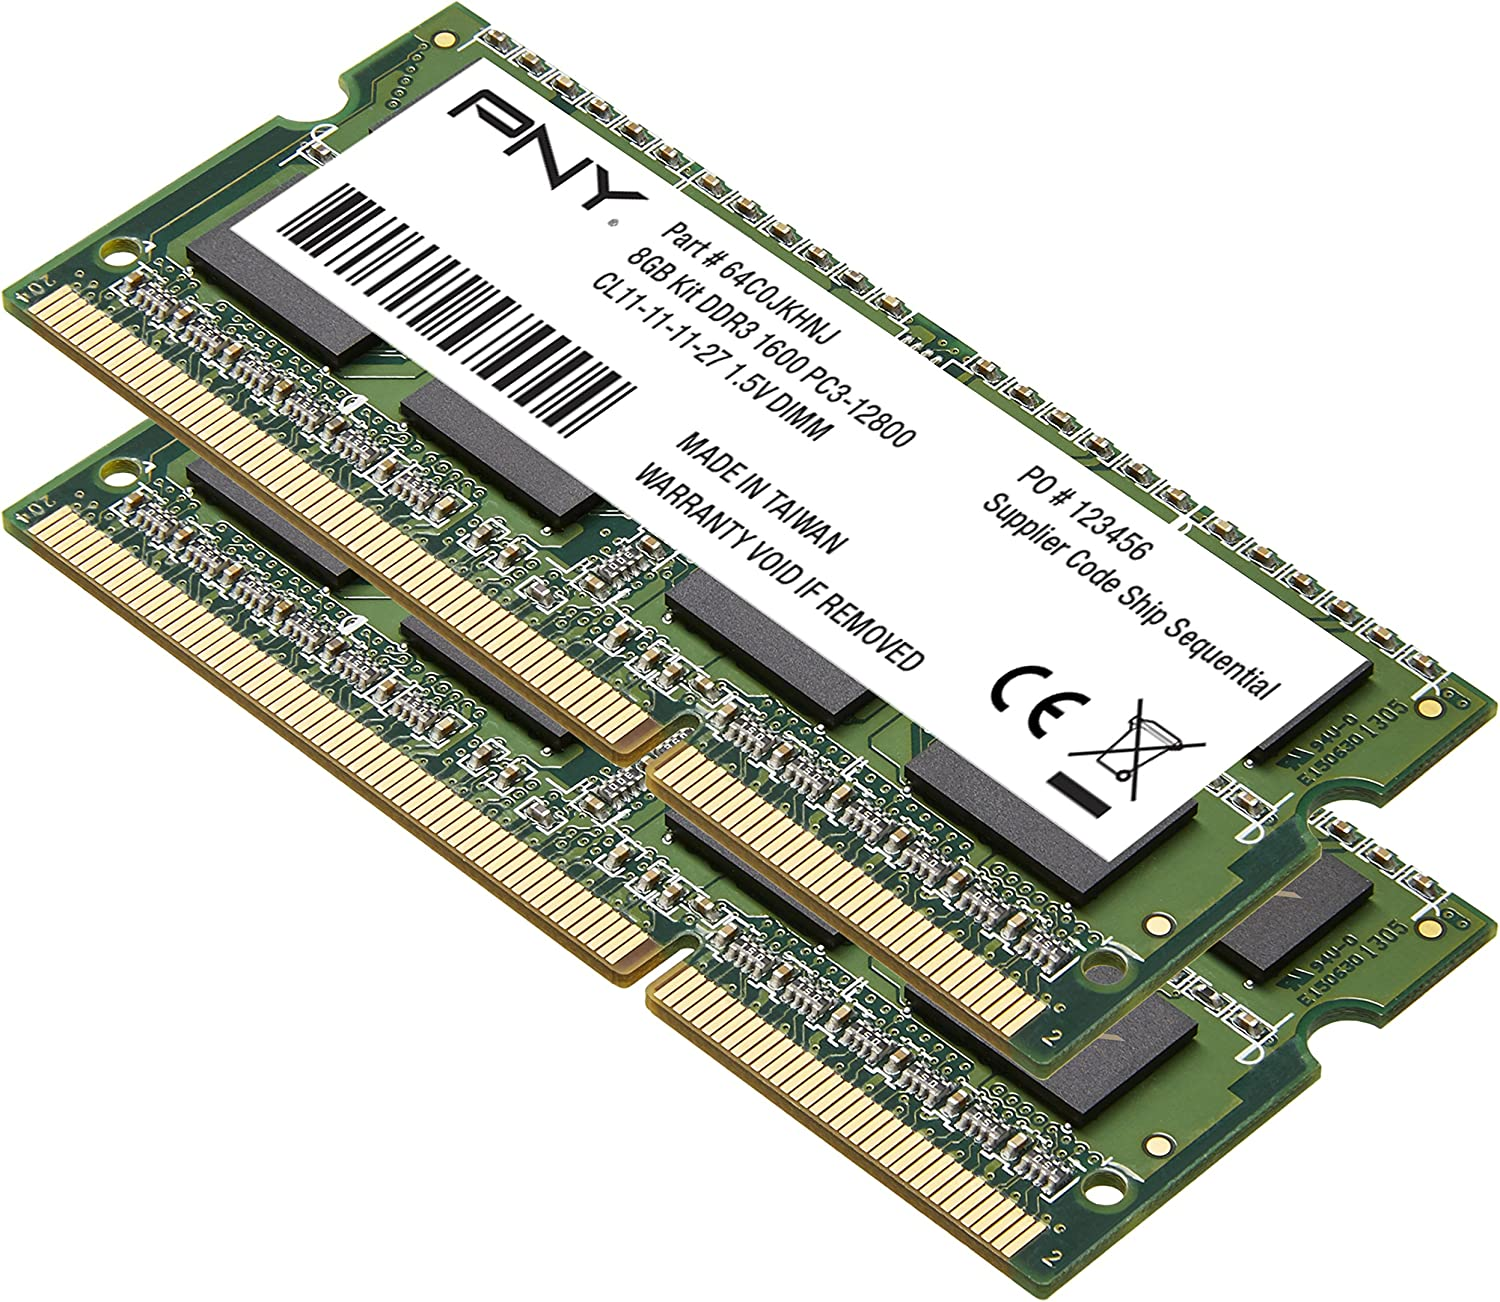 PNY Performance 8GB Kit DDR3 1600MHz CL11 Notebook (SODIMM) Memory MN8GK2D31600-Z